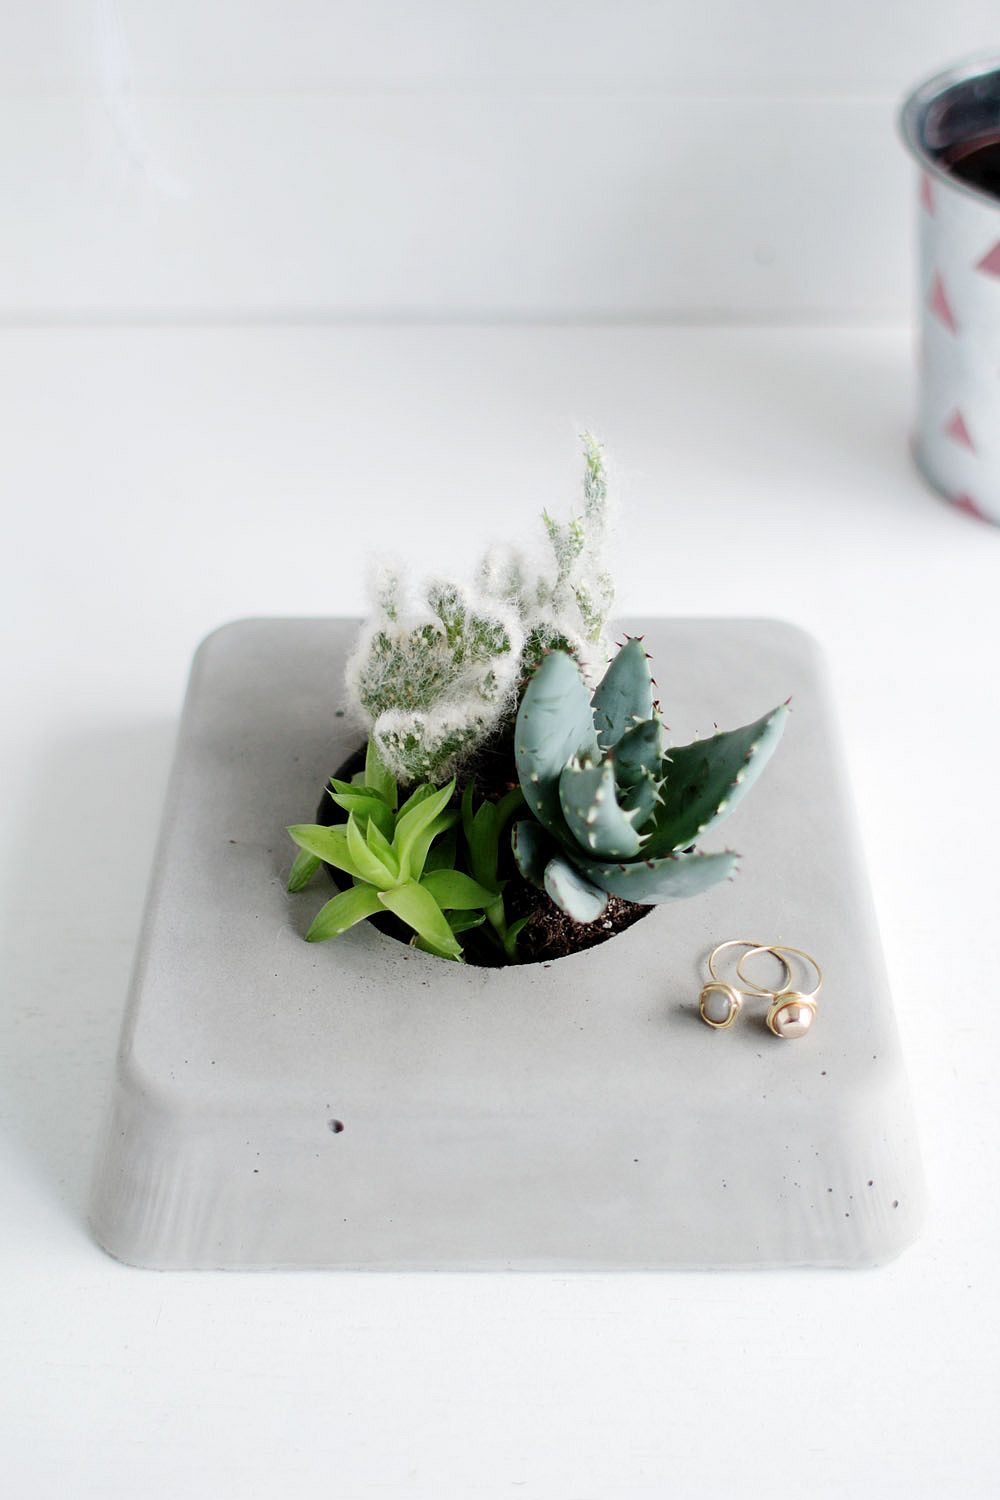 Concrete homemade succulent panters that are super-easy to make